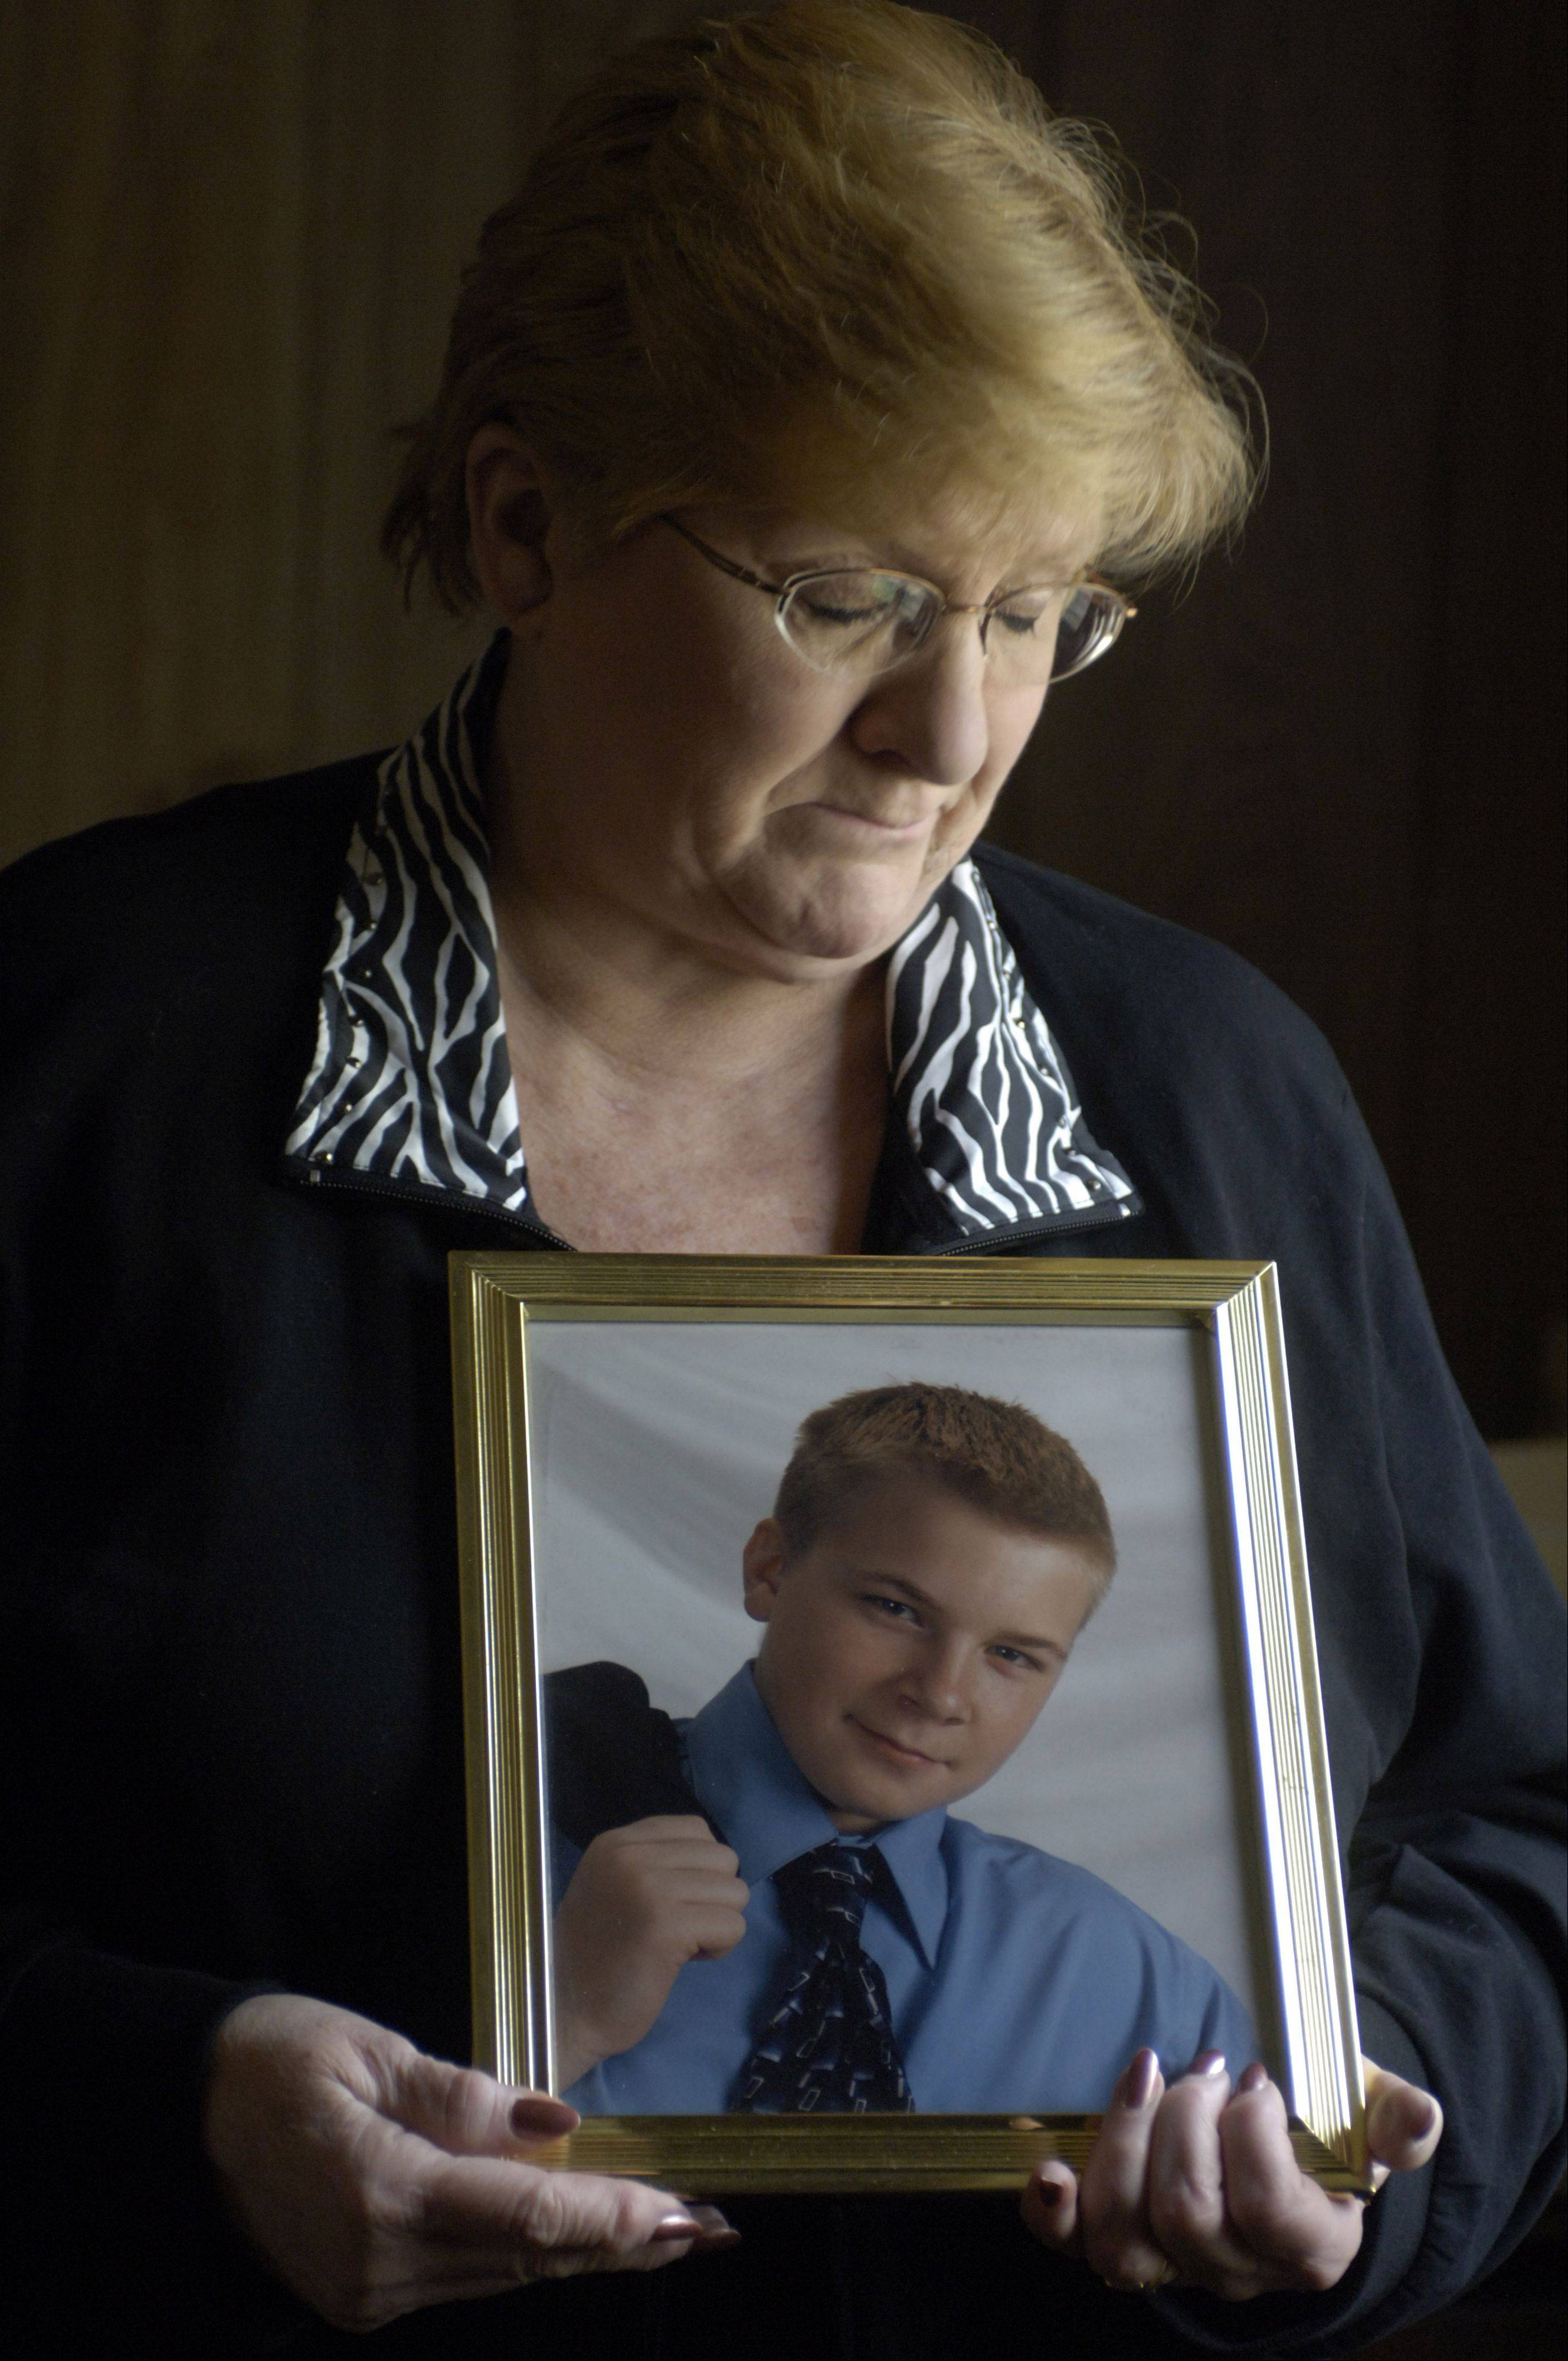 Nanci Koschman of Mount Prospect holds a photo of her son, David, who died after Richard Vanecko hit him during an altercation outside a Chicago bar.